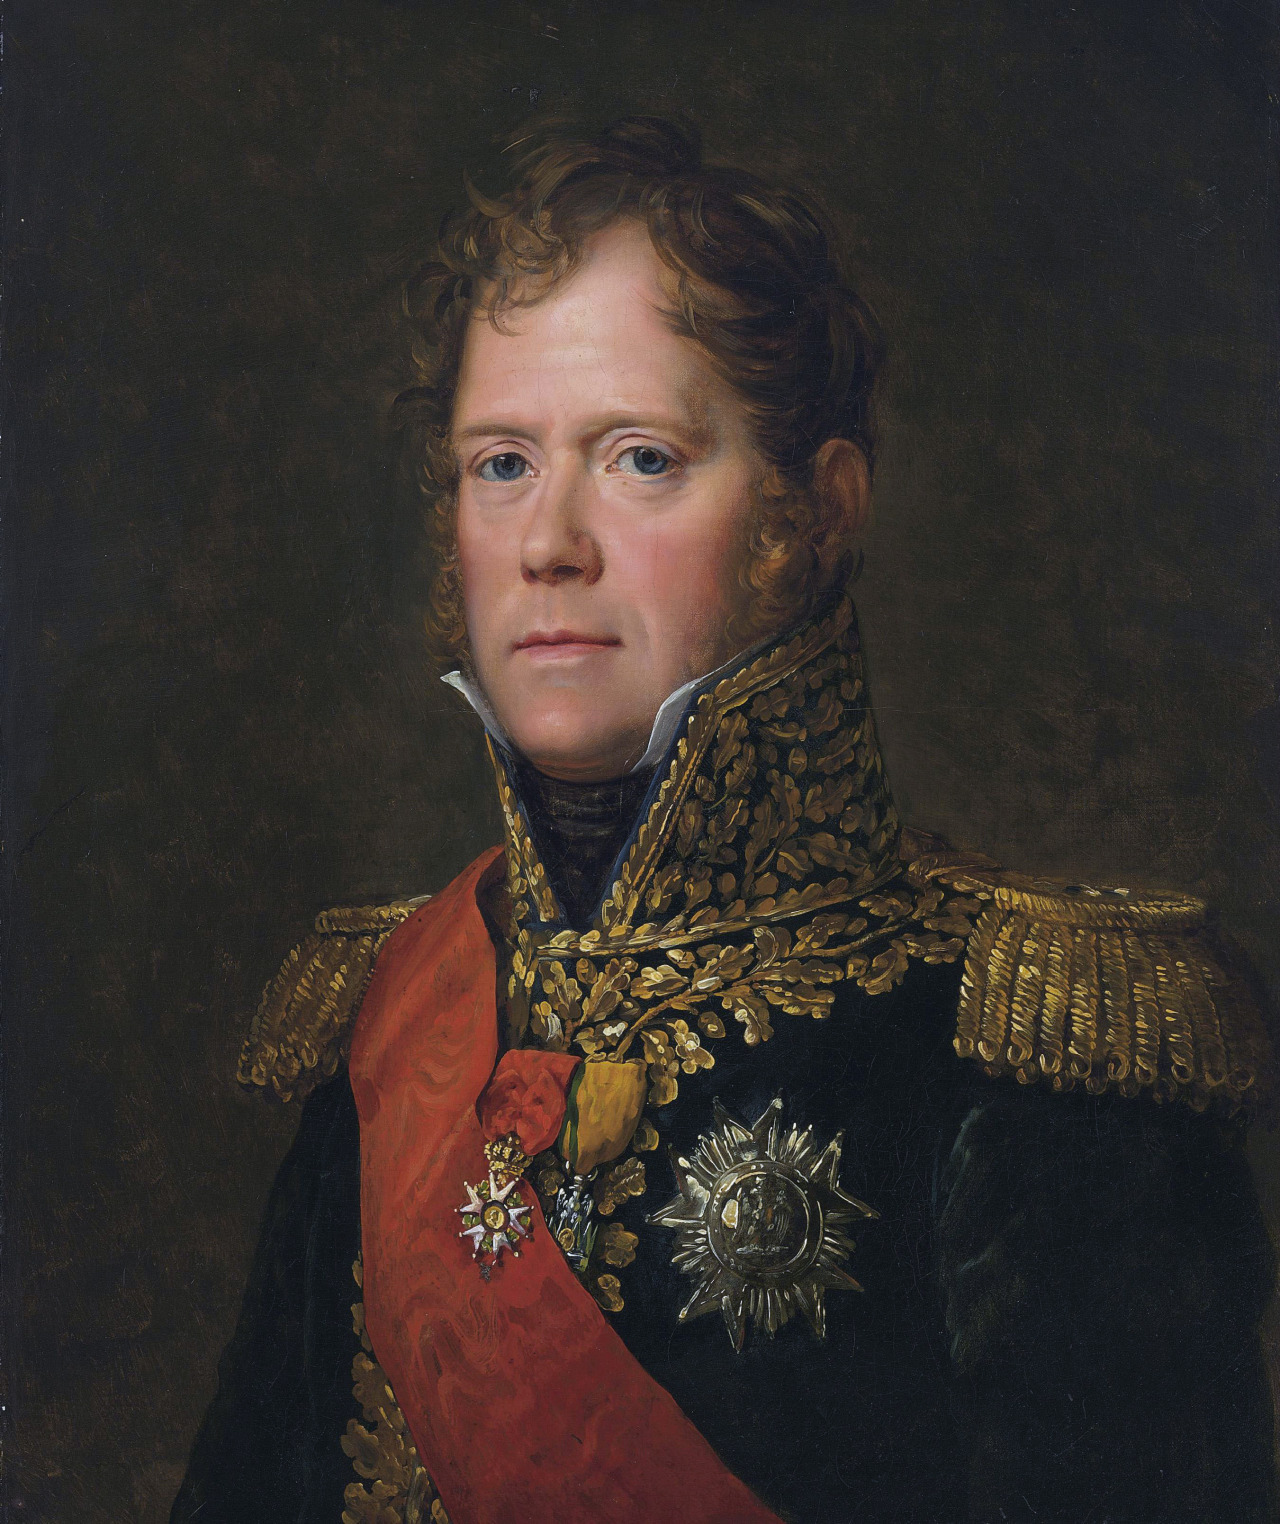 "thevictorianduchess:  Marshal Michel Ney, duc d'Elchingen, prince de la MoskovaFrançois GérardOil on canvasc. 1805Michel Ney (French pronunciation: ​[miʃɛl ˈnɛ]), 1st Duc d'Elchingen, 1st Prince de la Moskowa (10 January 1769 – 7 December 1815), popularly known as Marshal Ney, was a French soldier and military commander during the French Revolutionary Wars and the Napoleonic Wars. He was one of the original 18 Marshals of France created by Napoleon. He was known as Le Rougeaud (""red faced"" or ""ruddy"") by his men and nicknamed le Brave des Braves (""the bravest of the brave"") by Napoleon.  - wikipedia"